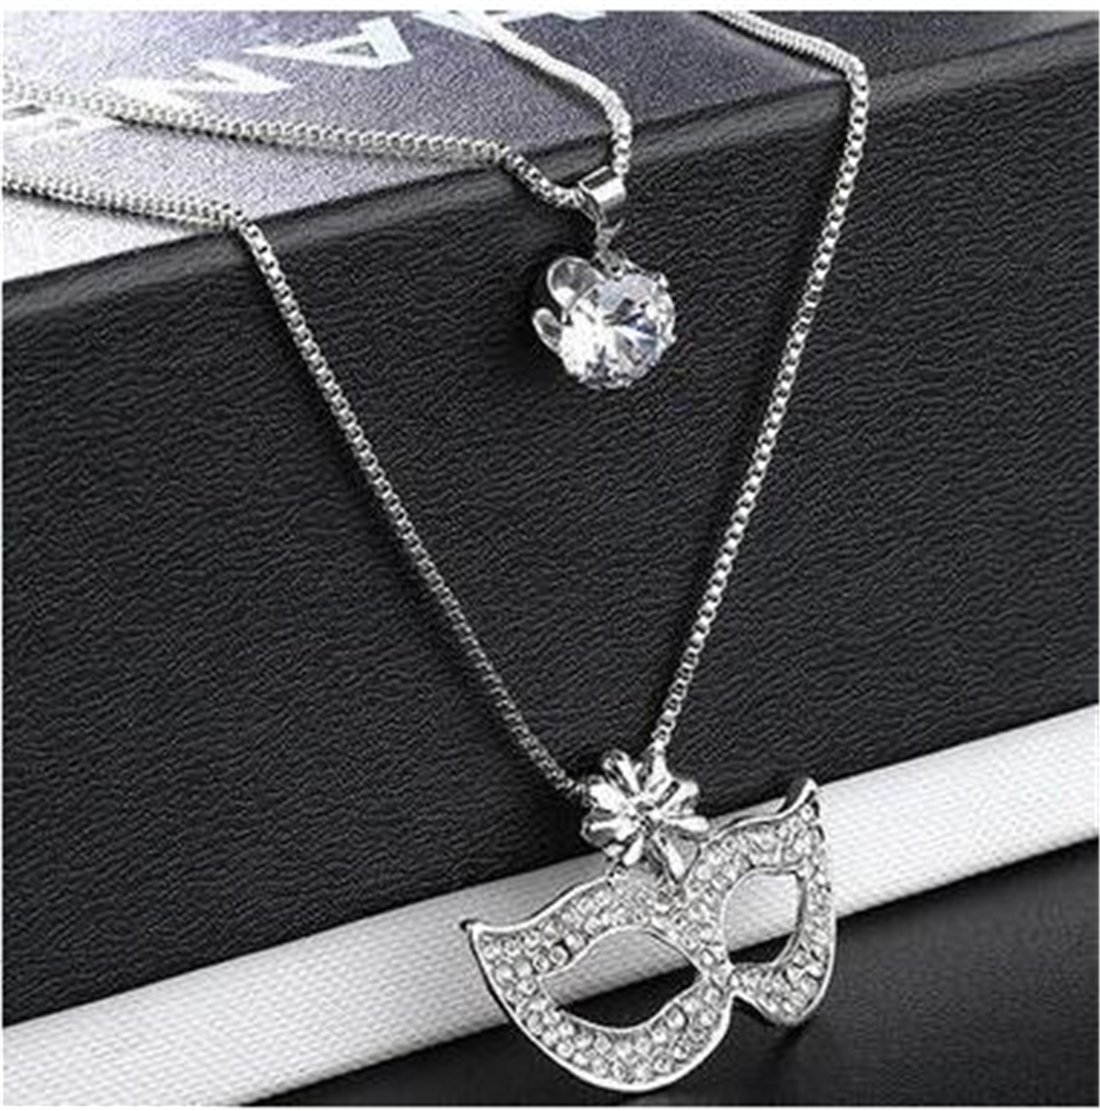 Tmrow 1pc Rhinestone Crystal Sweater Chain Fox Masquerade Mask Pendant Necklace